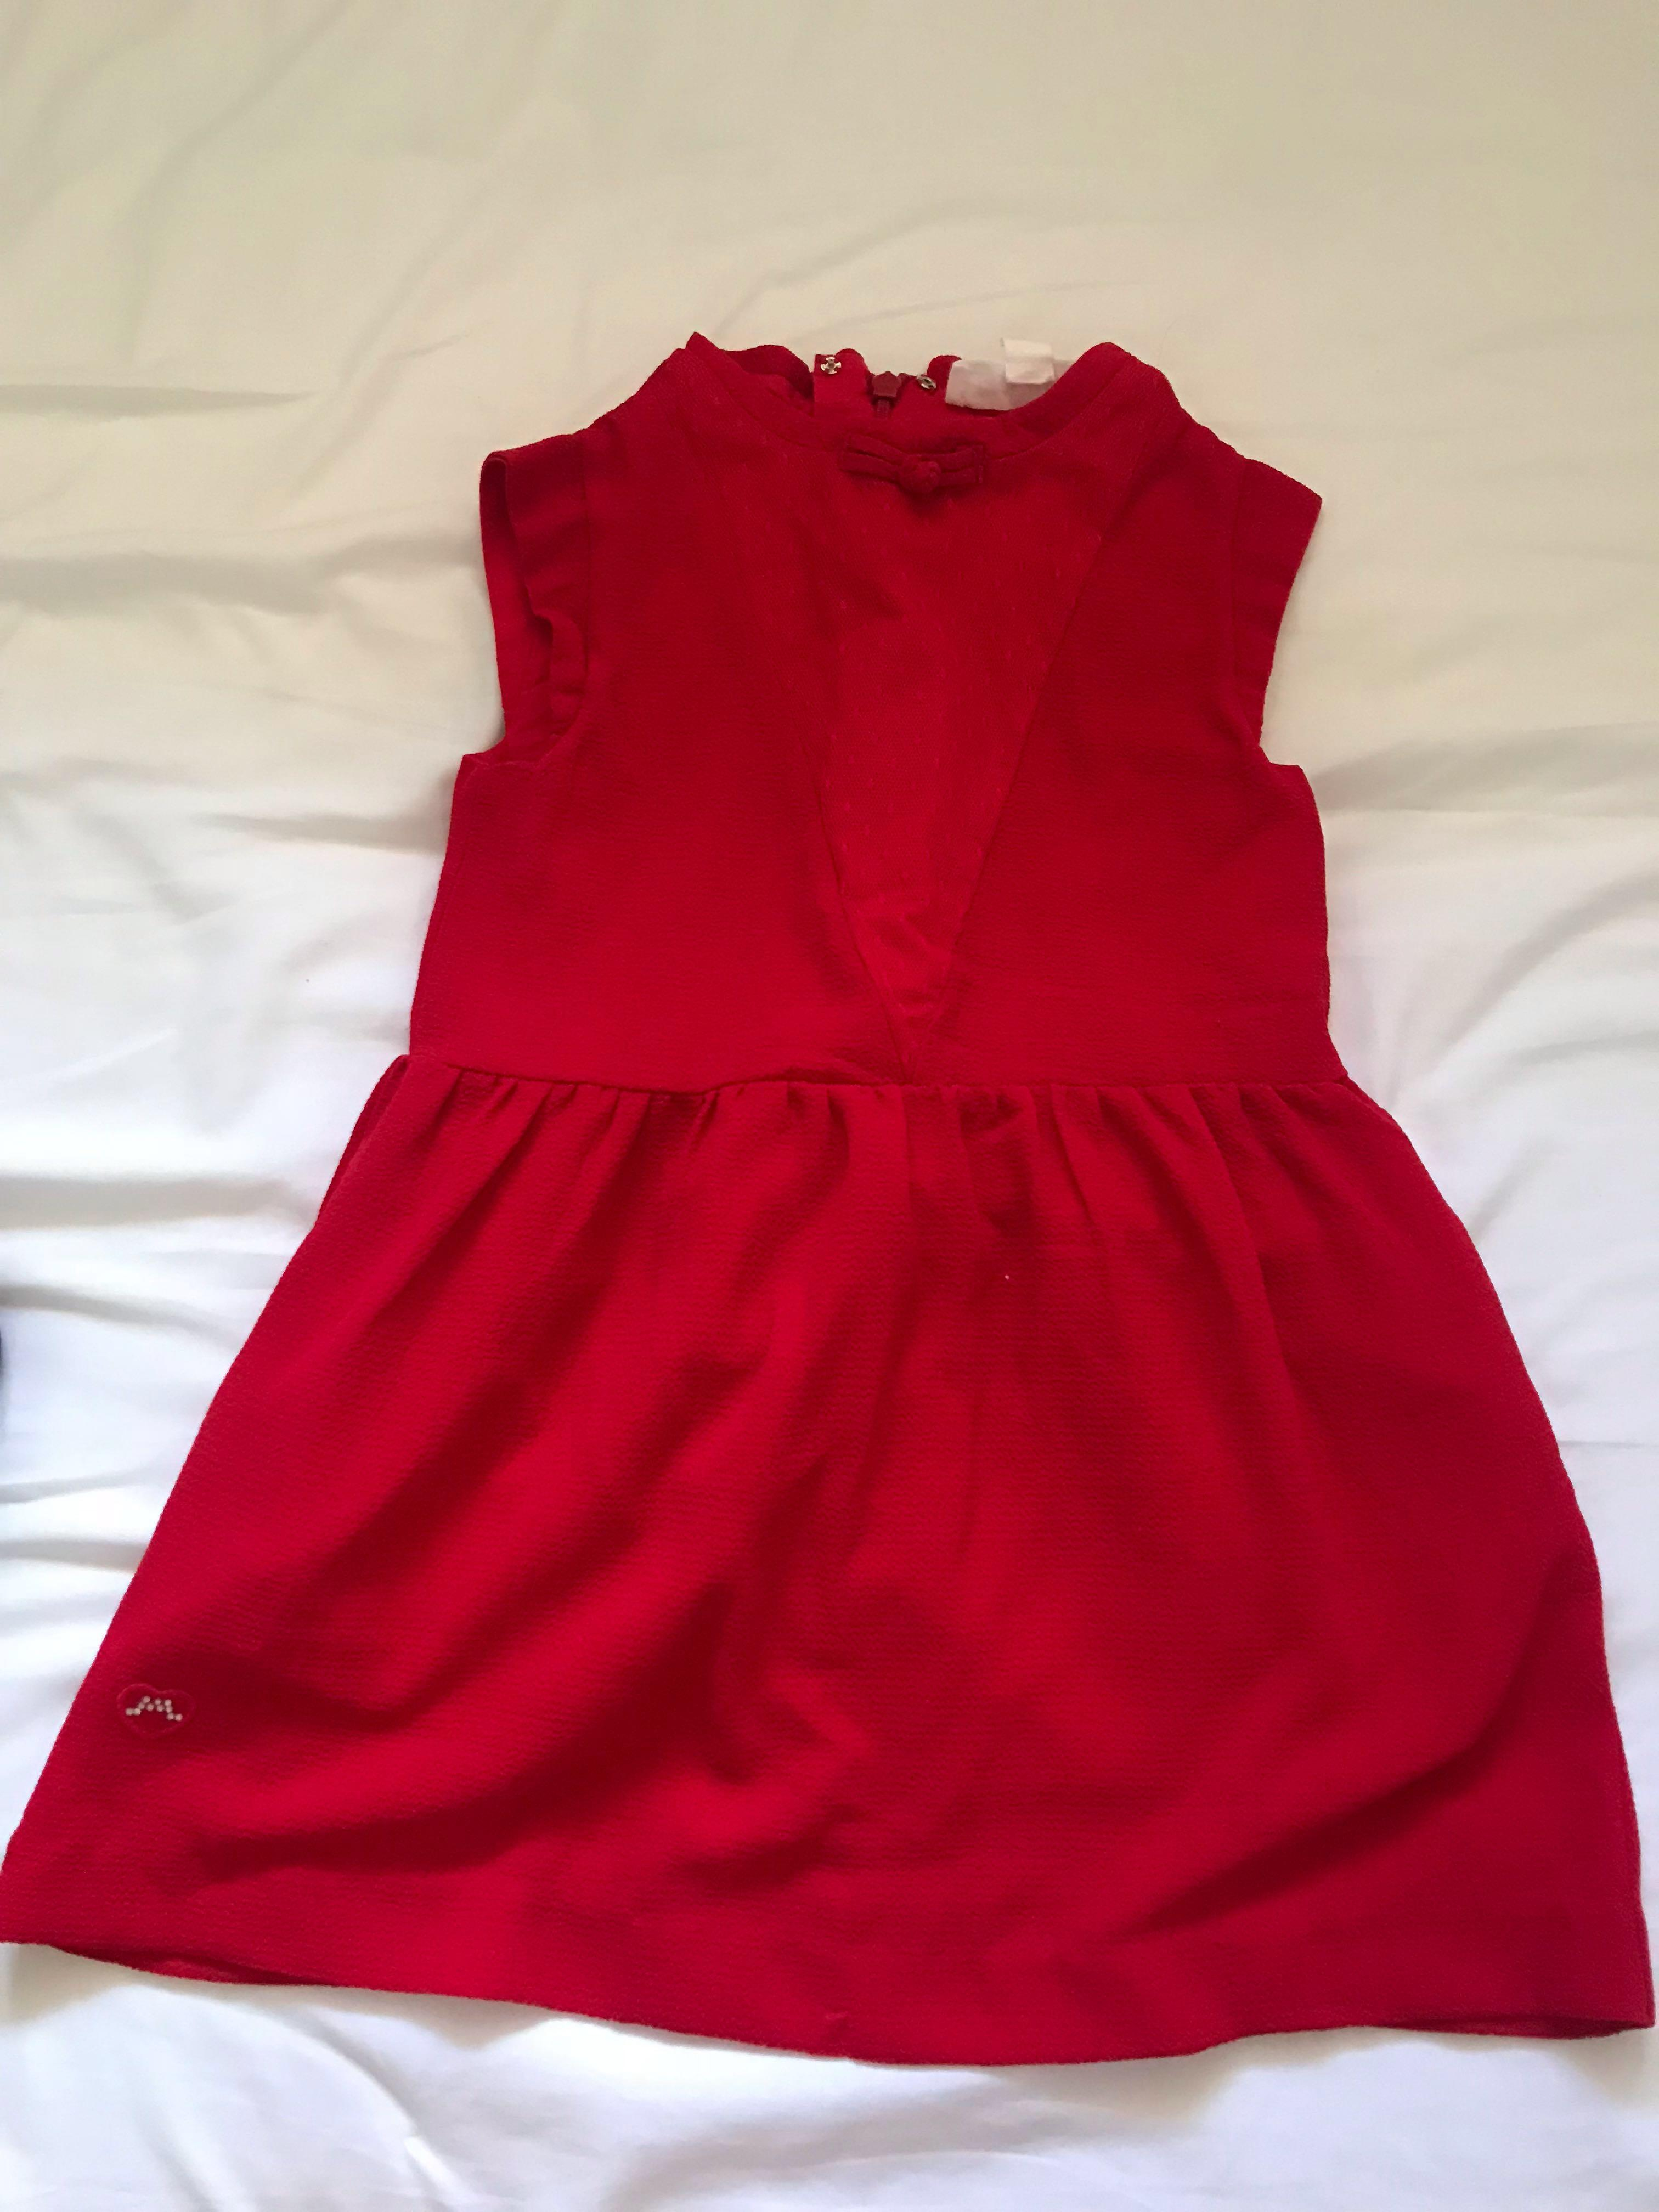 Red dress for 7 years old girl